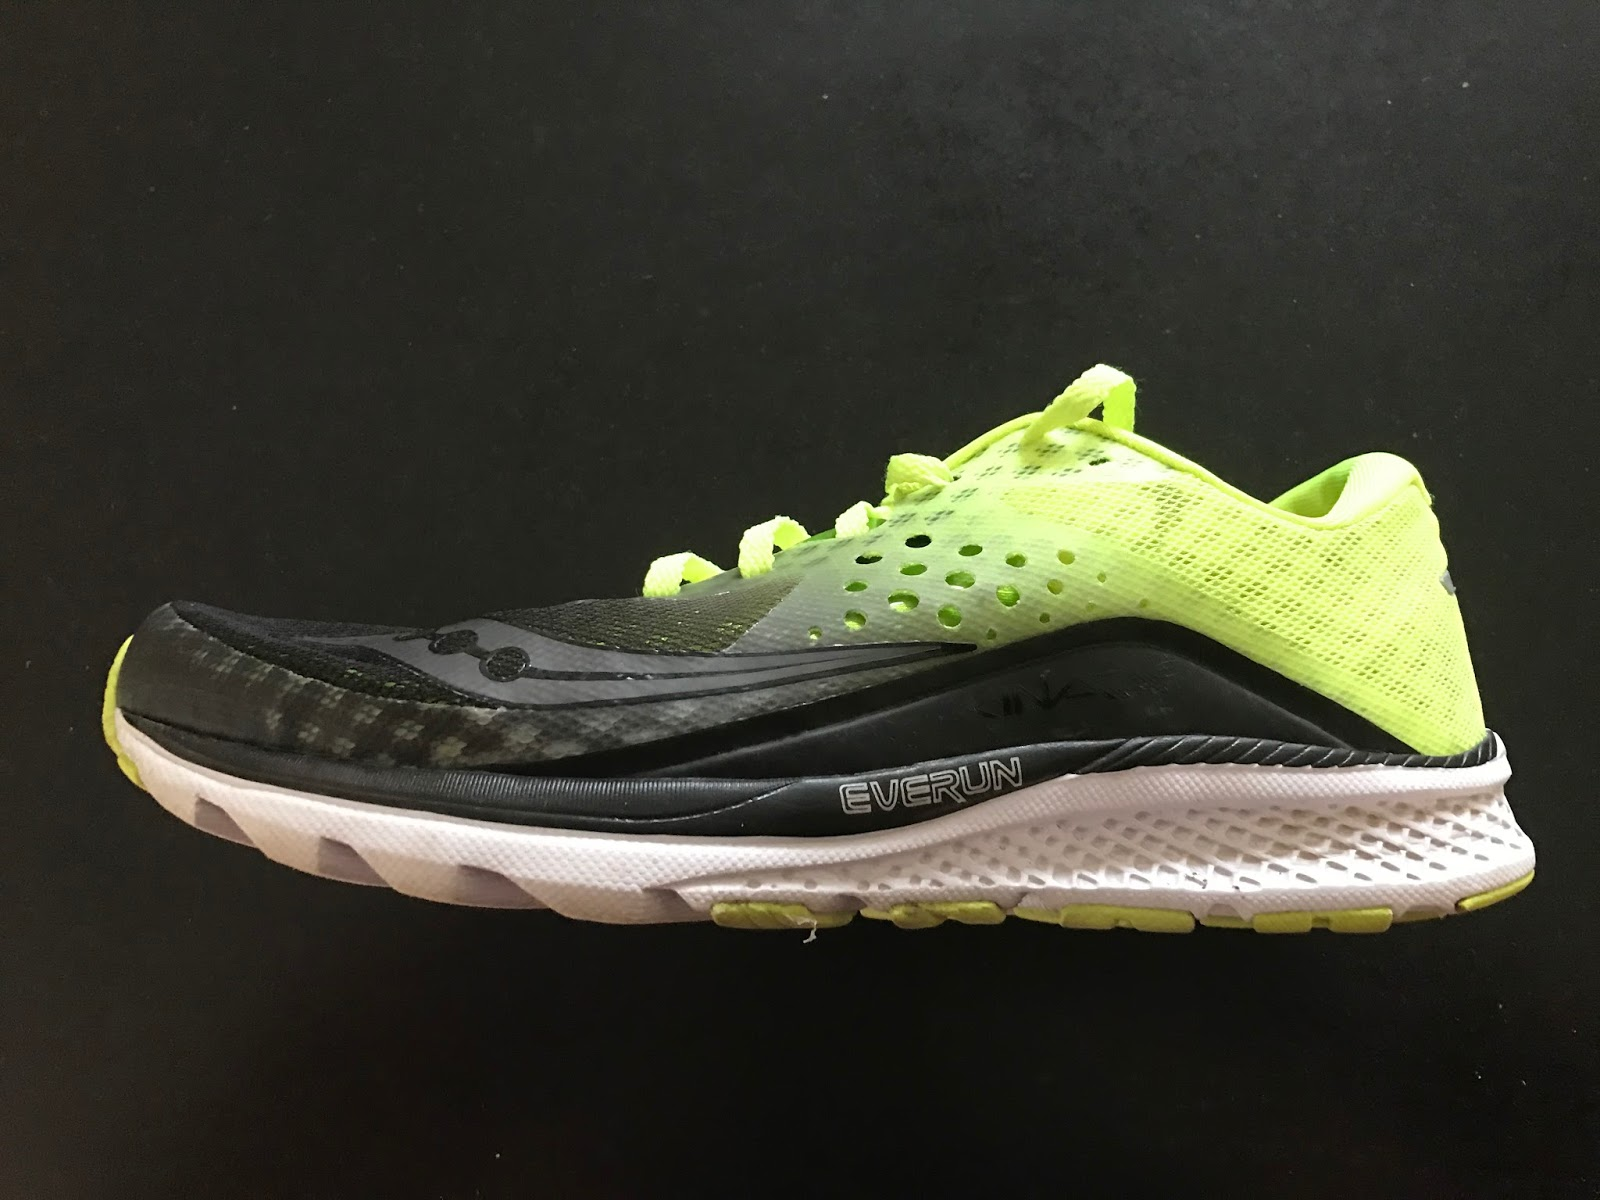 Road Trail Run: Saucony Zealot ISO 3 First Runs Impressions